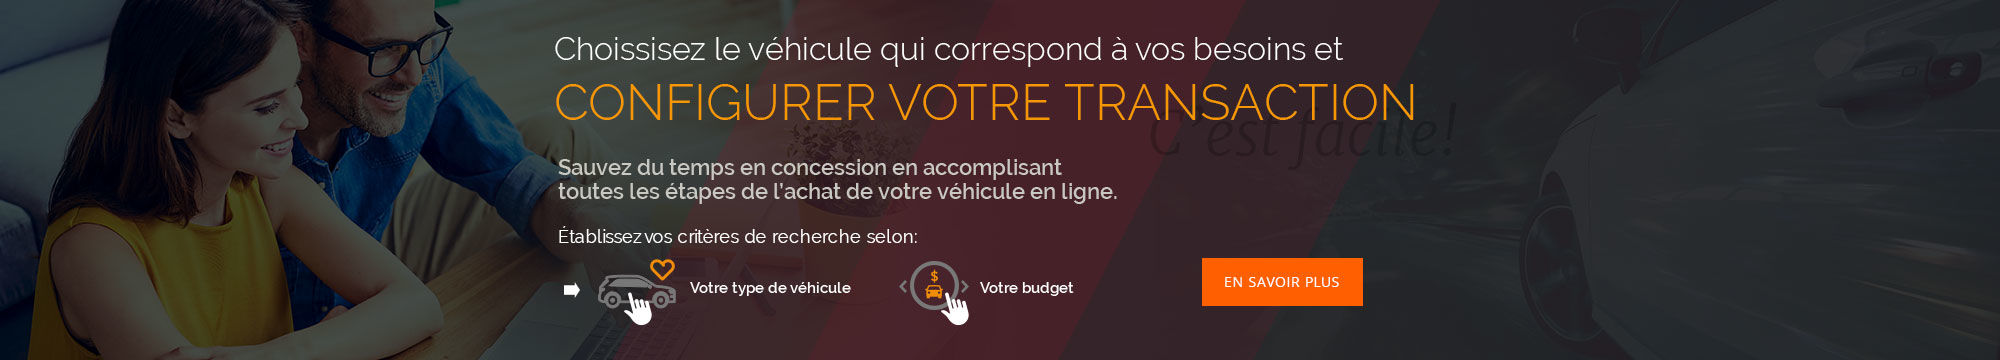 Visualiser votre transaction